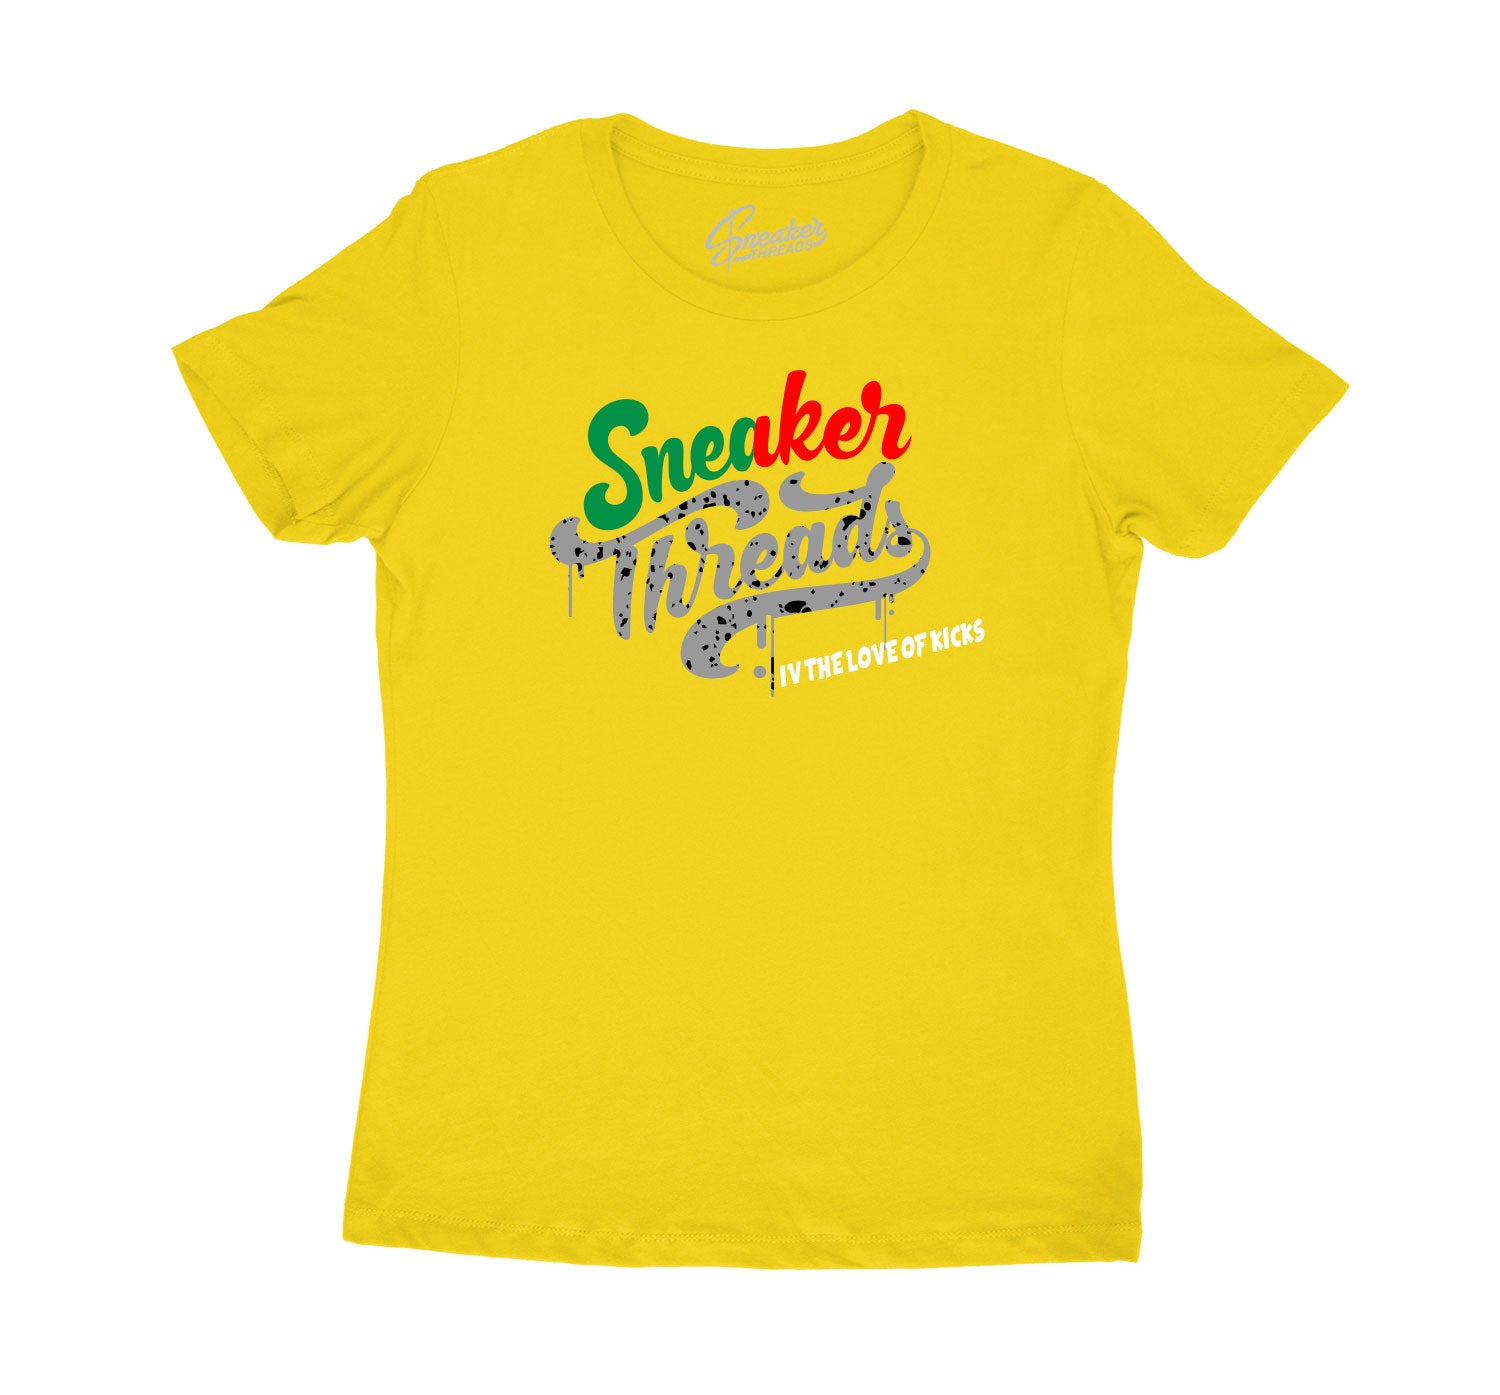 Rasta Jordan 4 sneaker collection matching childrens shirt collection